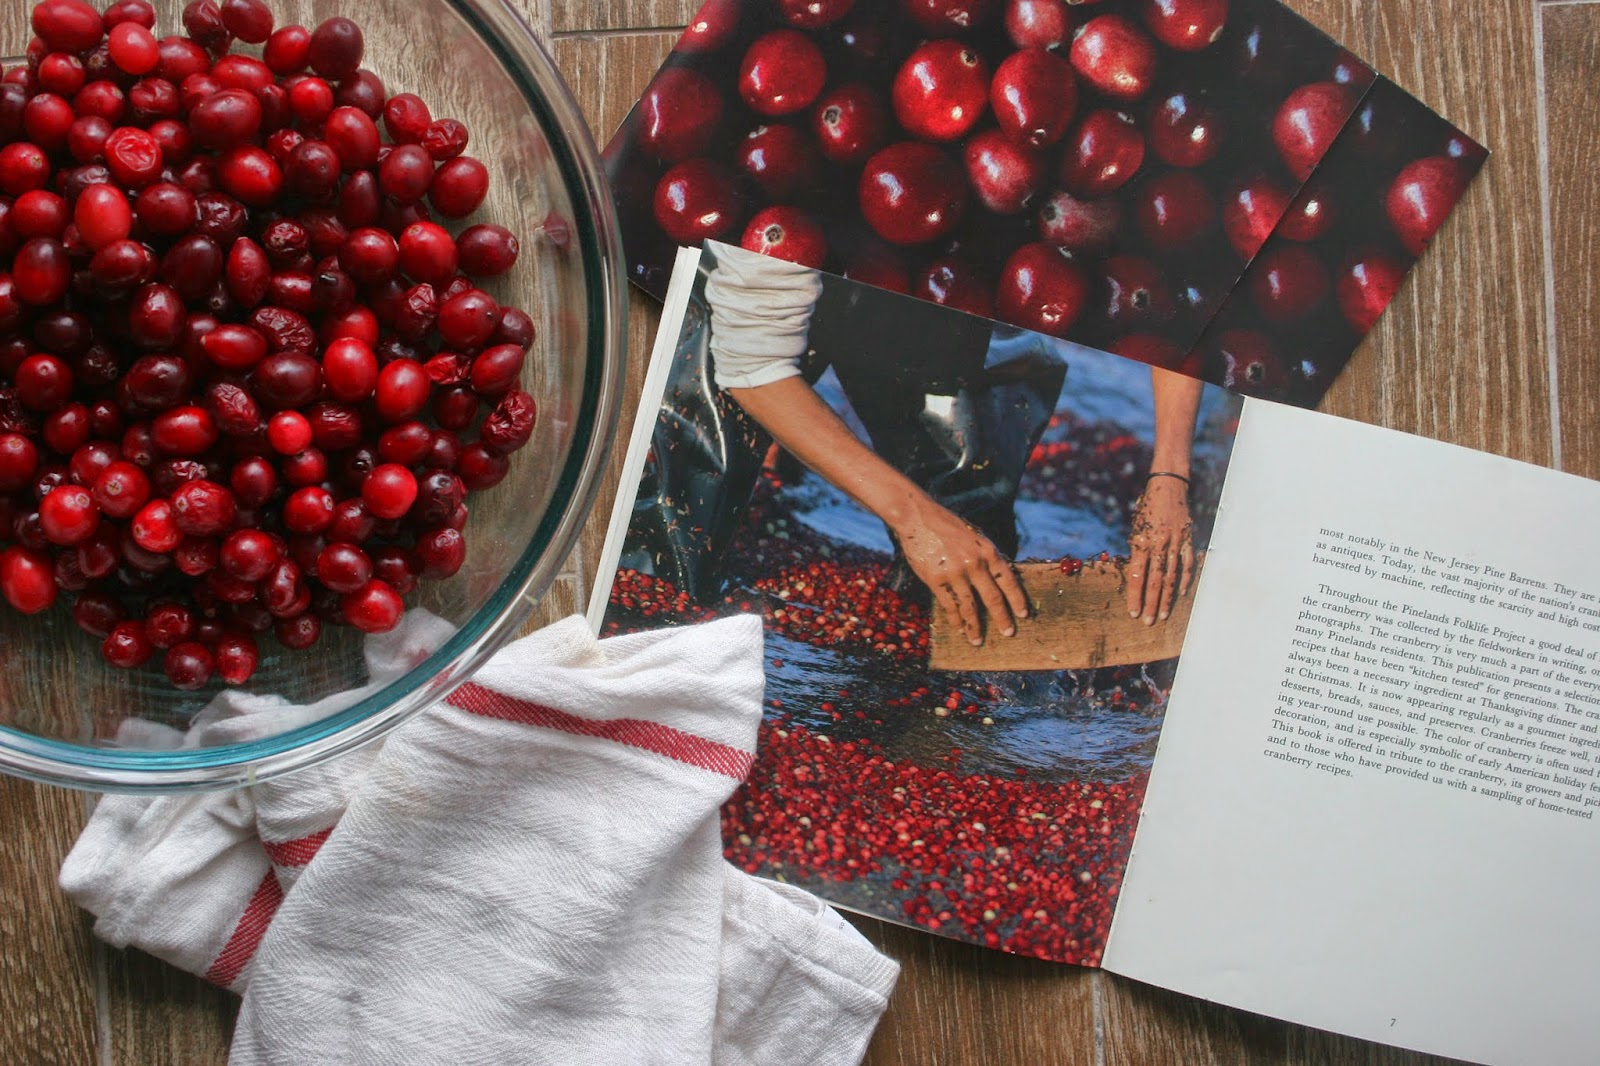 Cranberries and the American Folklife Center's Cookbook